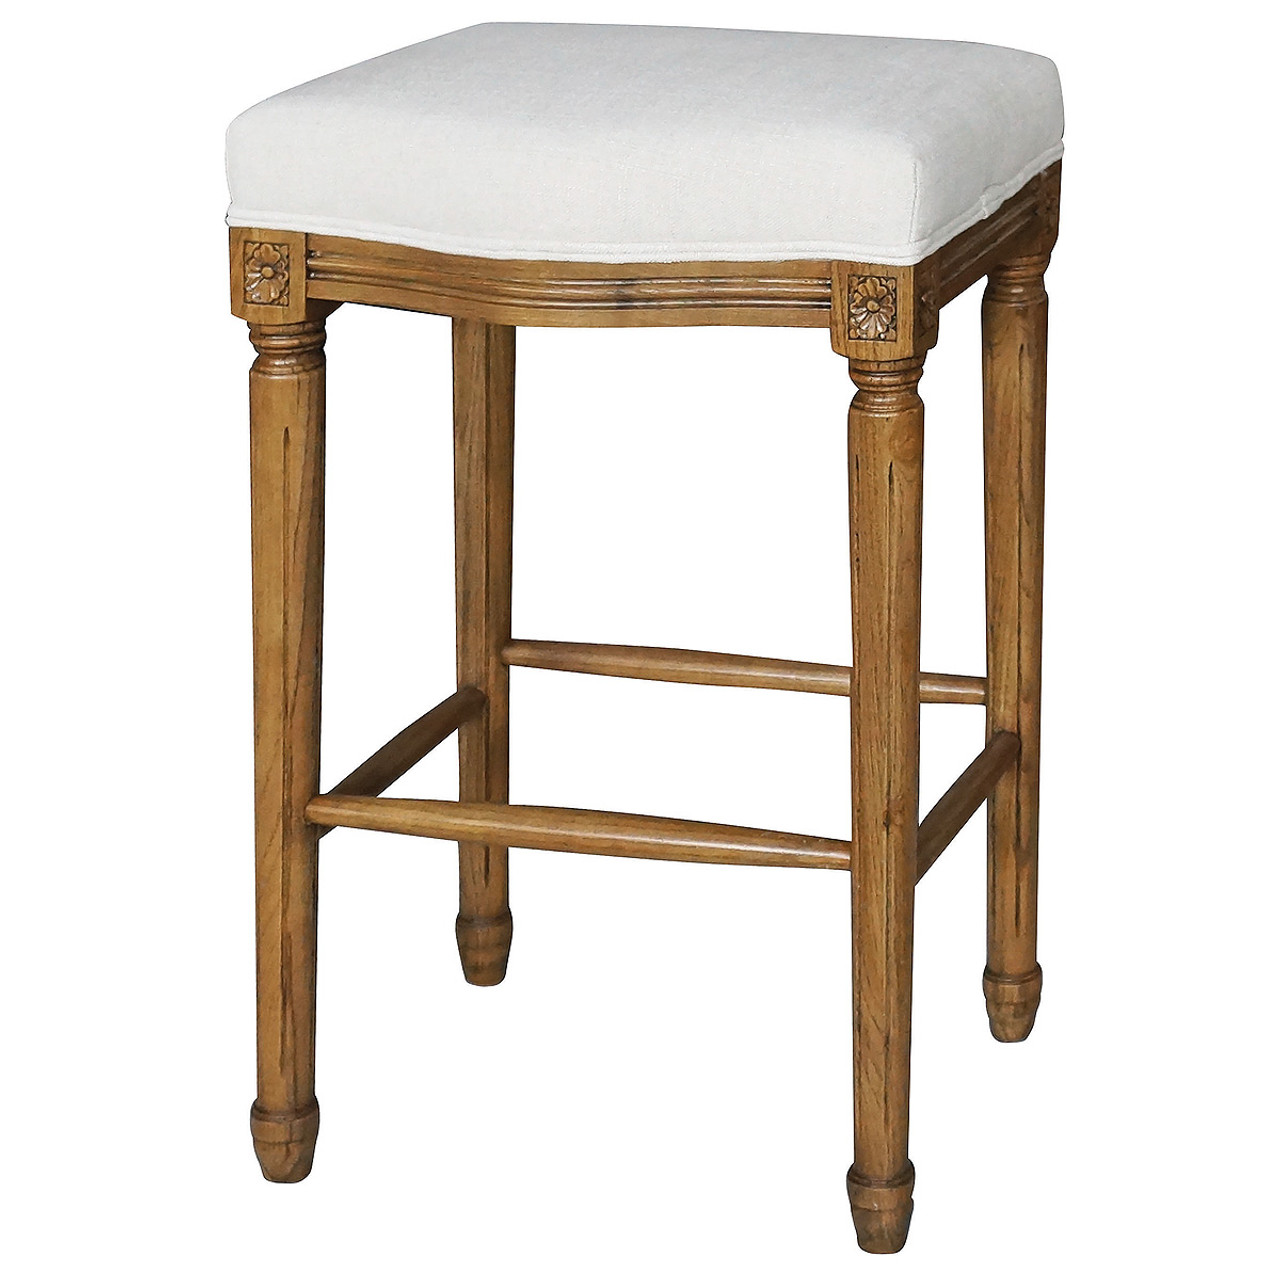 Ashford French White Linen Upholstered Oak Bar Stool Zin  : AshfordFrenchWhiteLinenUpholsteredOakBarStool291901430269693 from www.zinhome.com size 1200 x 1200 jpeg 204kB